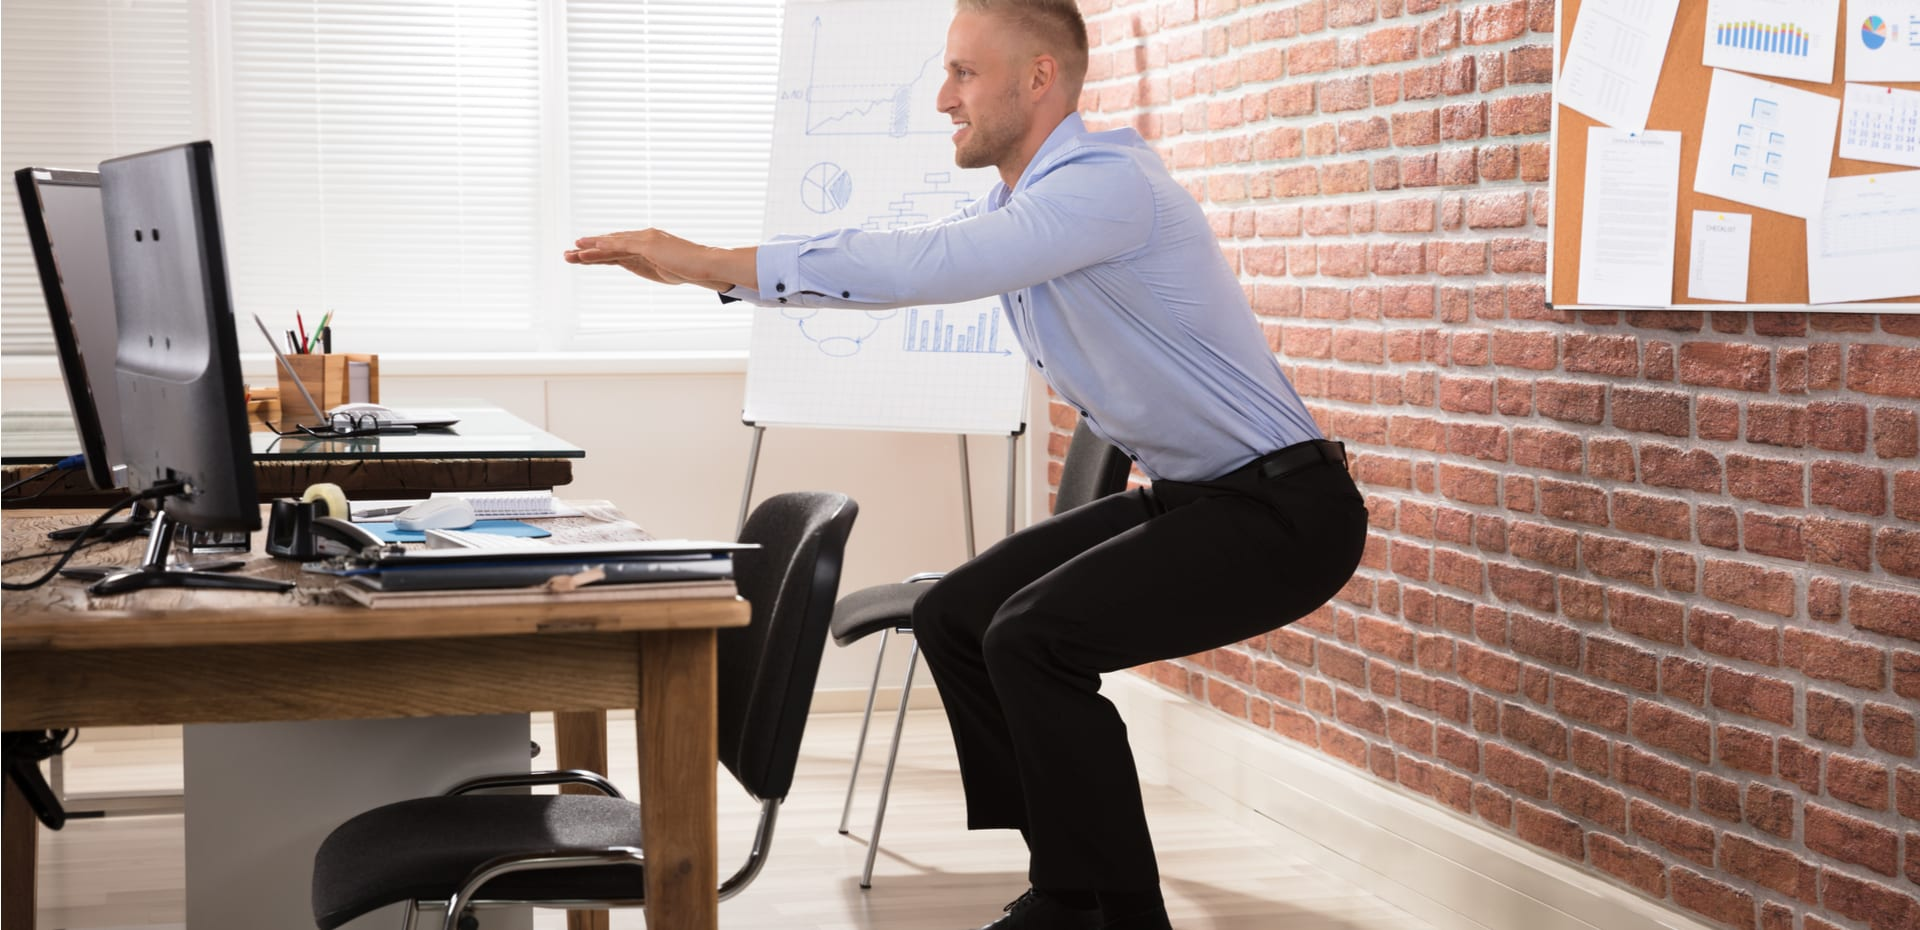 Stupendous 5 Invigorating Desk Exercises To Do At Work Tony Robbins Gmtry Best Dining Table And Chair Ideas Images Gmtryco